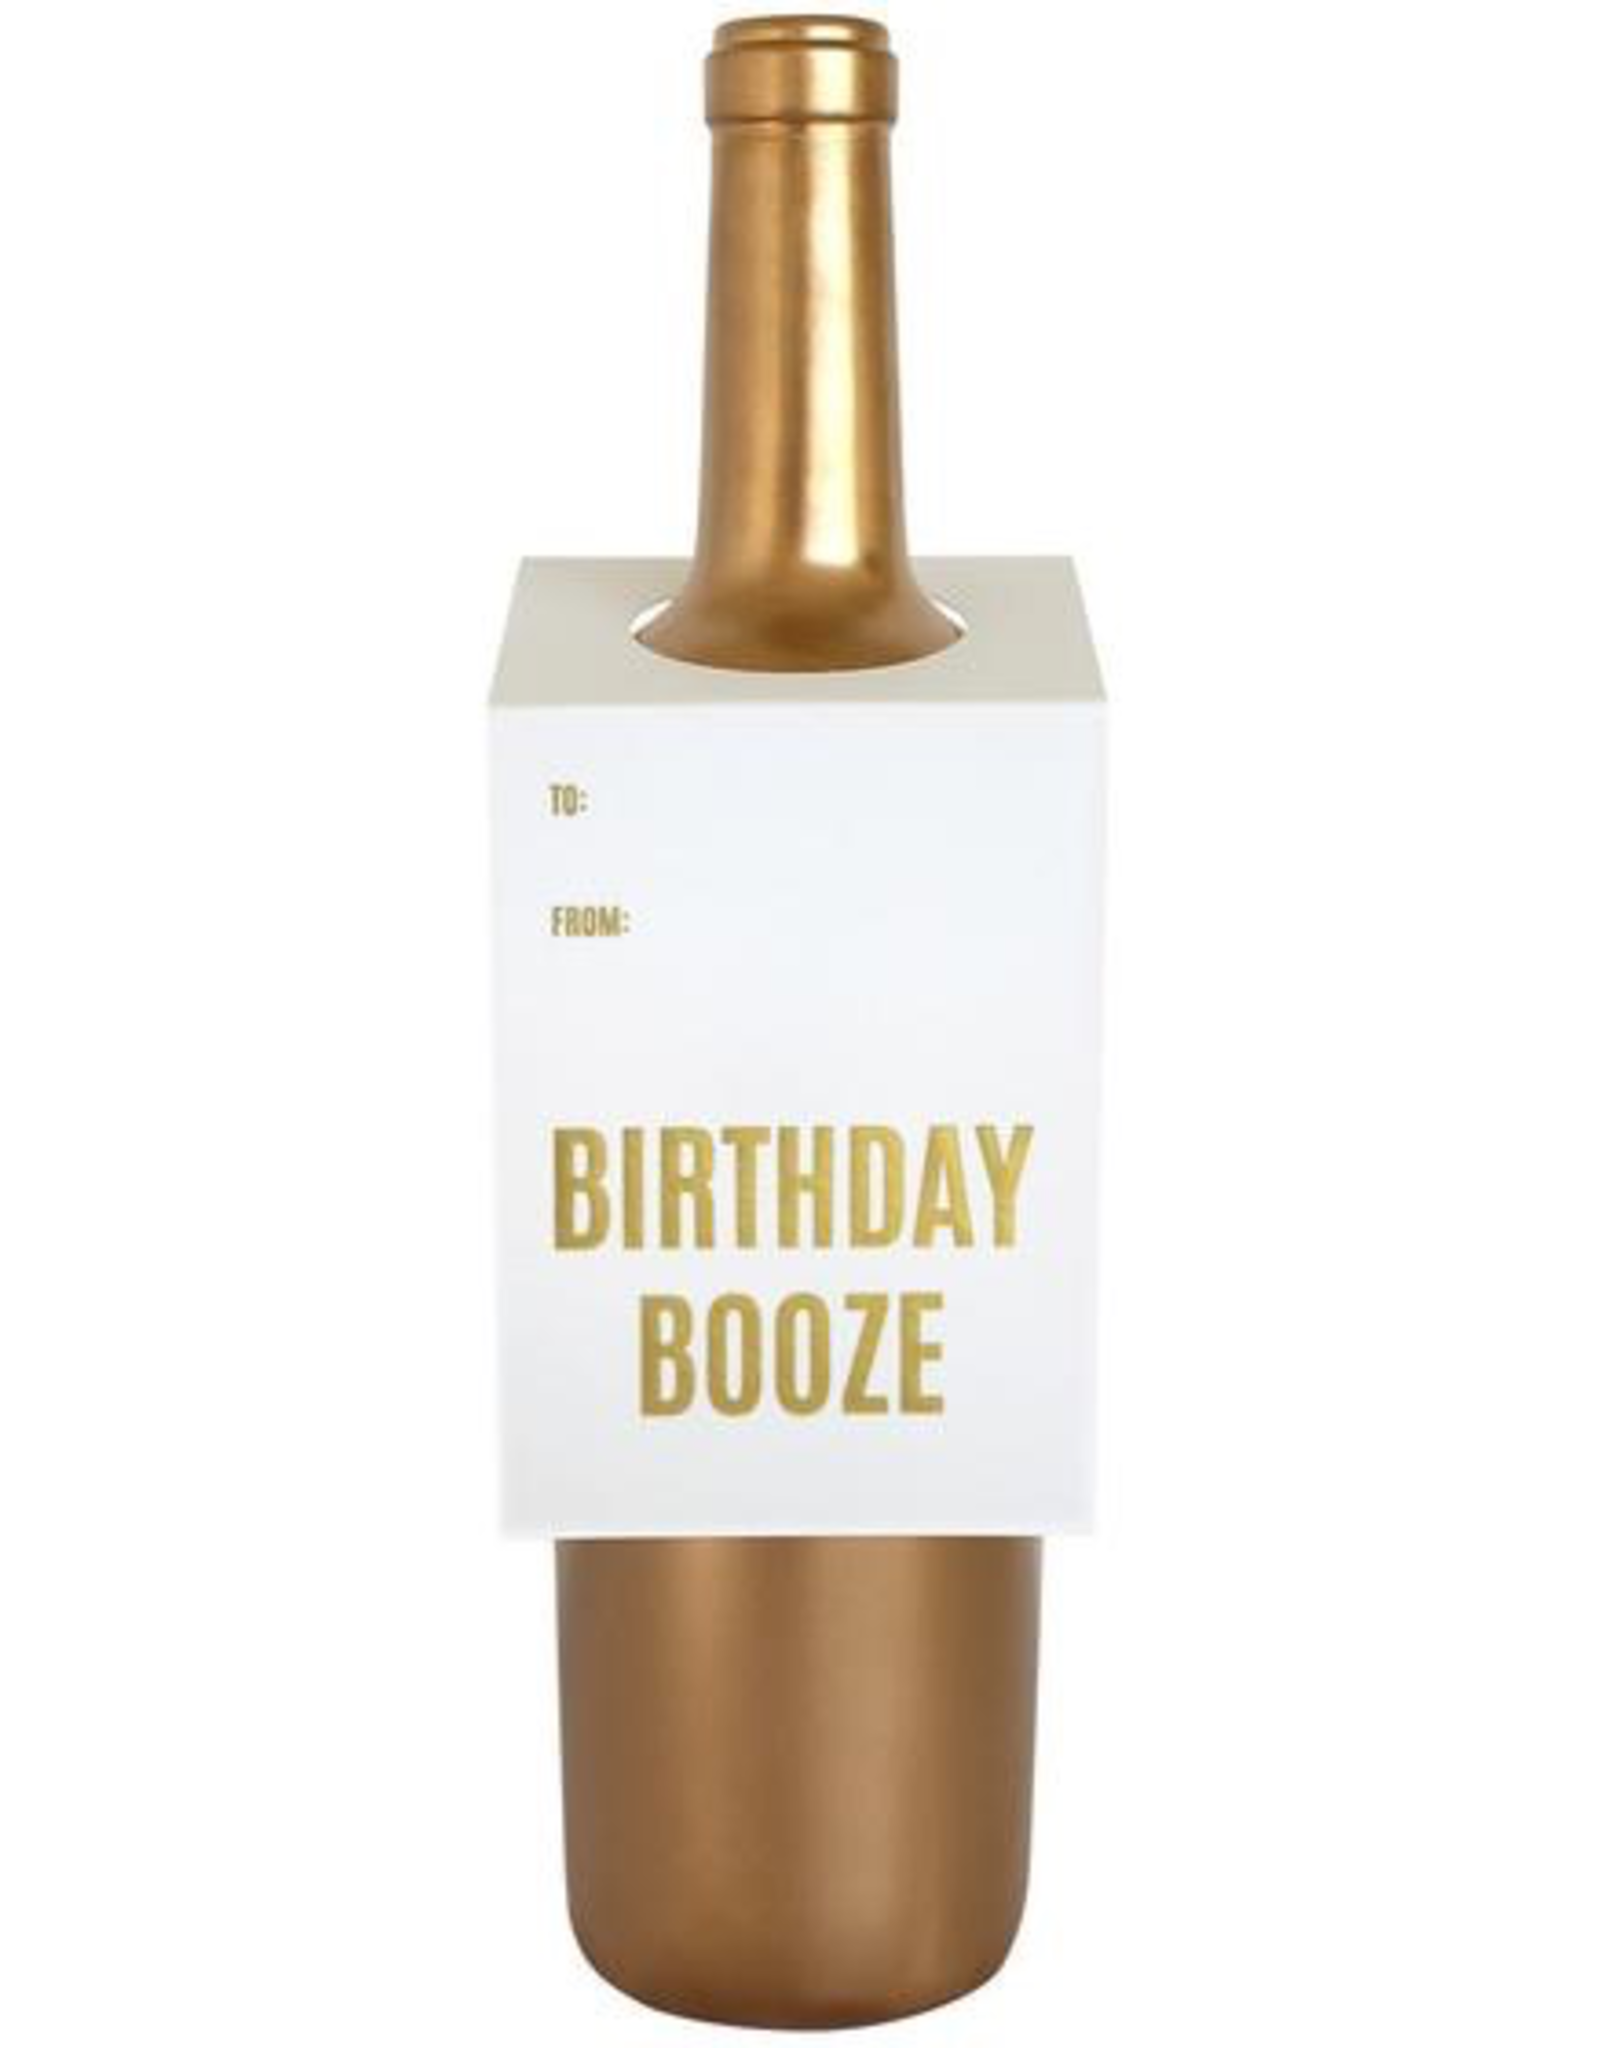 Card, Wine Tag, Birthday Booze